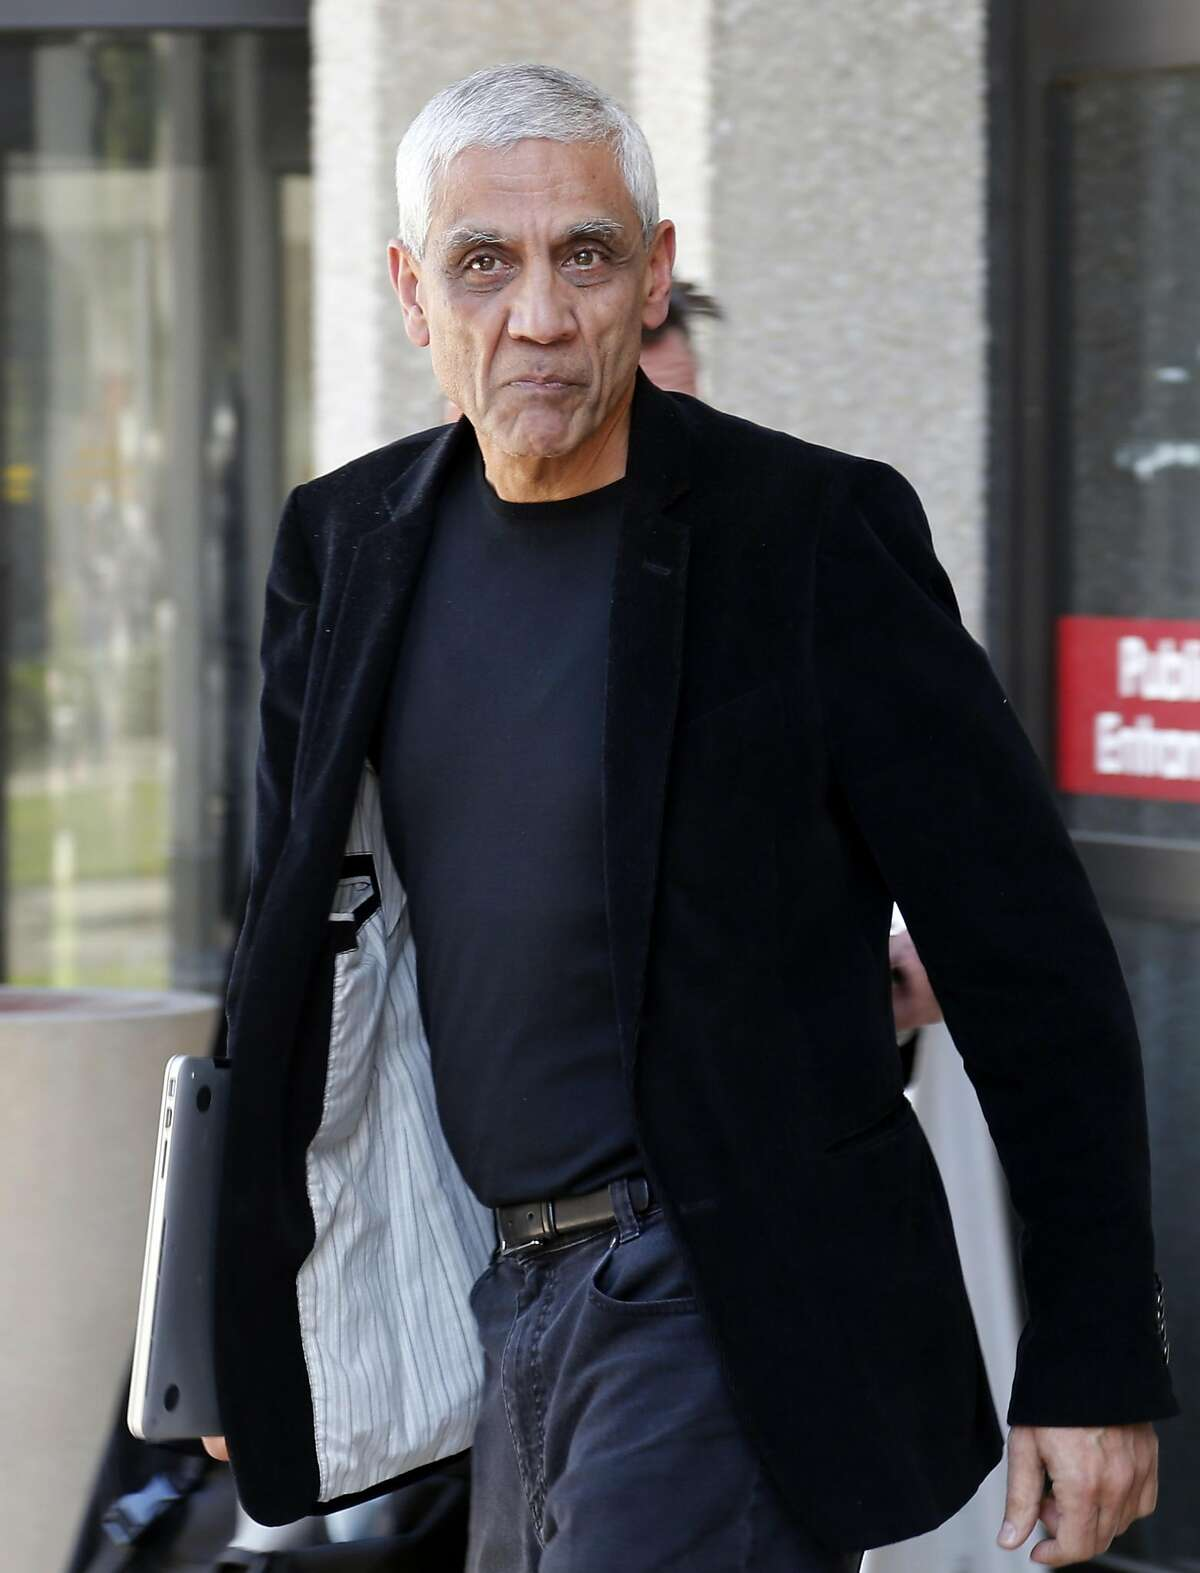 File - In this May 12, 2014, file photo, Sun Microsystems co-founder Vinod Khosla leaves San Mateo County Superior Courthouse after testifying in Redwood City, Calif.